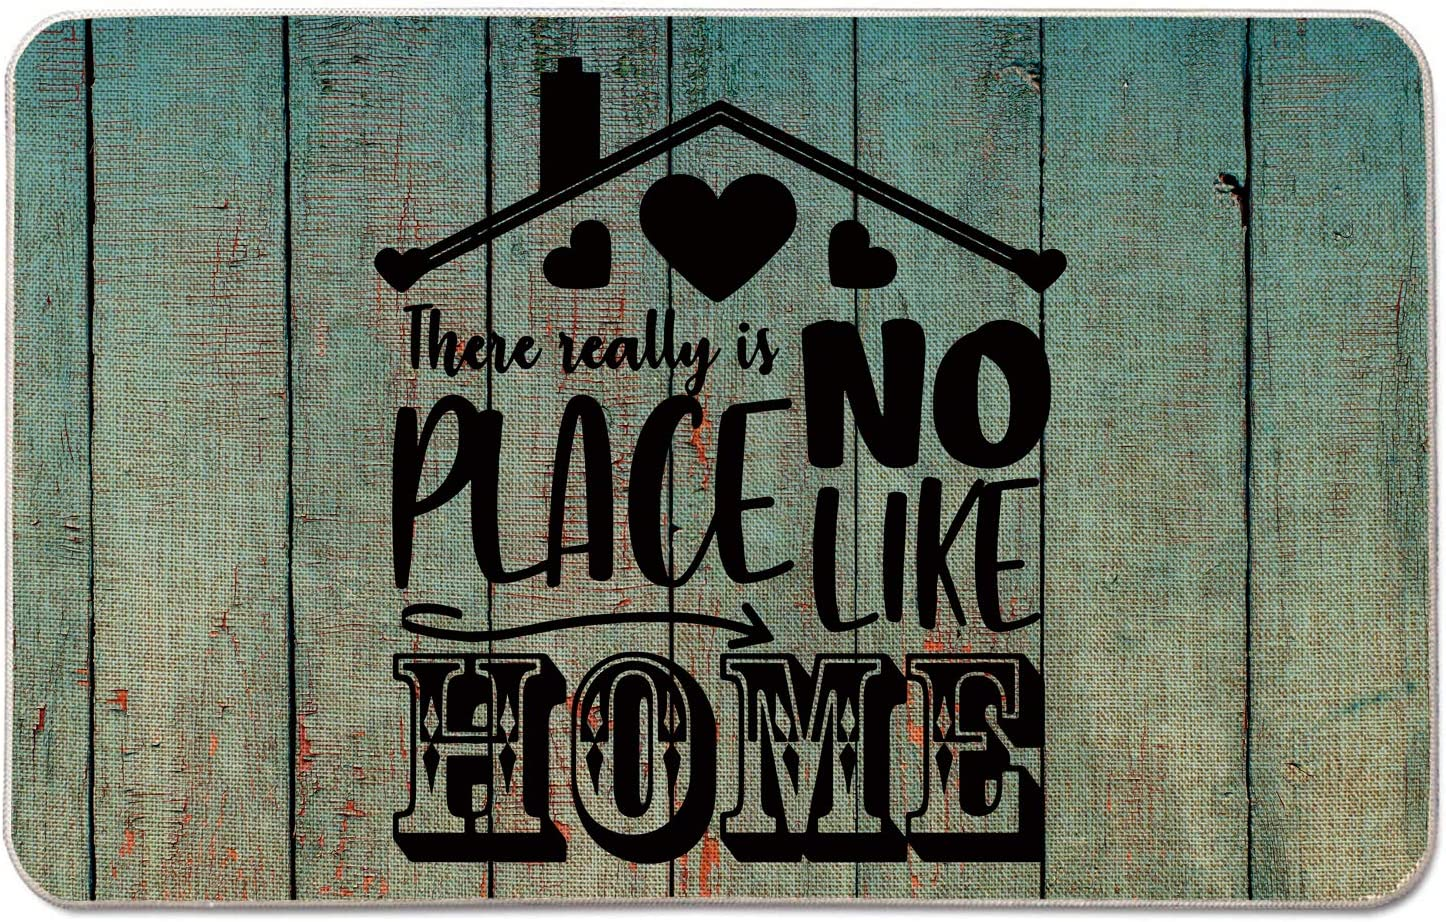 Occdesign Housewarming Welcome Mat for Front Door Farmhouse Rustic Decorative Entryway Outdoor Floor Doormat Durable Burlap Outdoor Rug | There Really is No Place Like Home